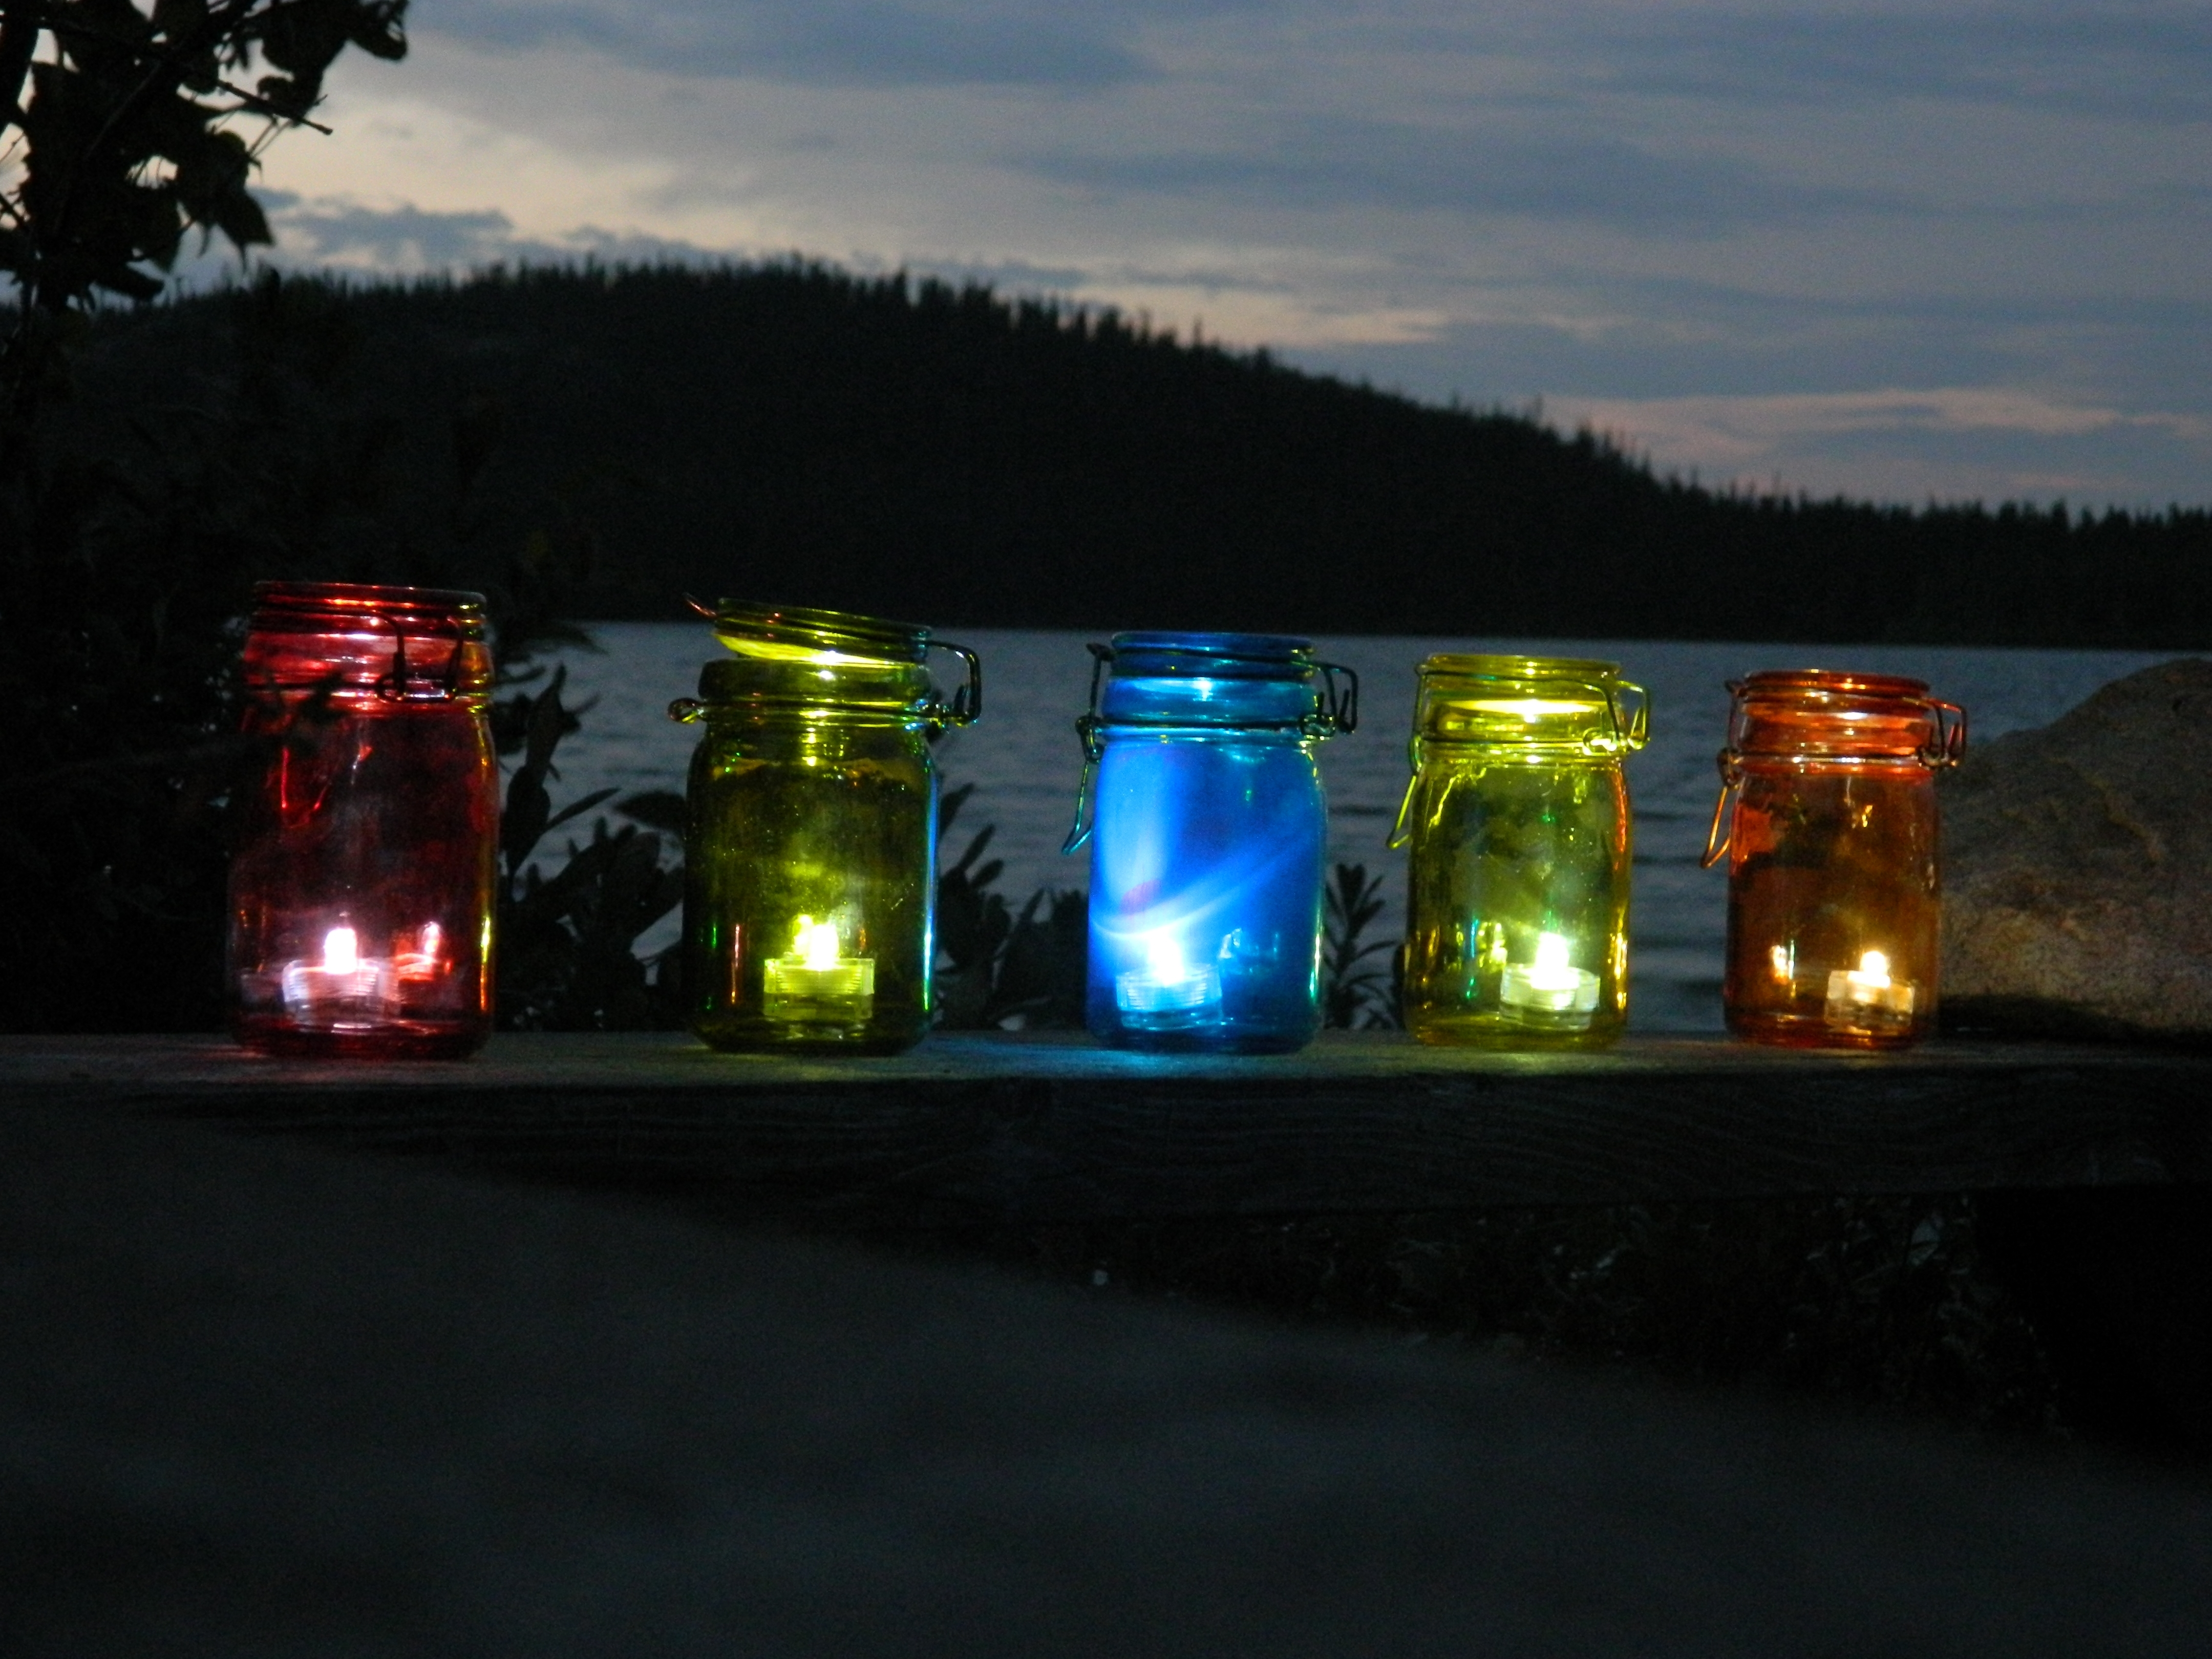 A Little Bit Of Glass Pertaining To Outdoor Tea Light Lanterns (Gallery 4 of 20)